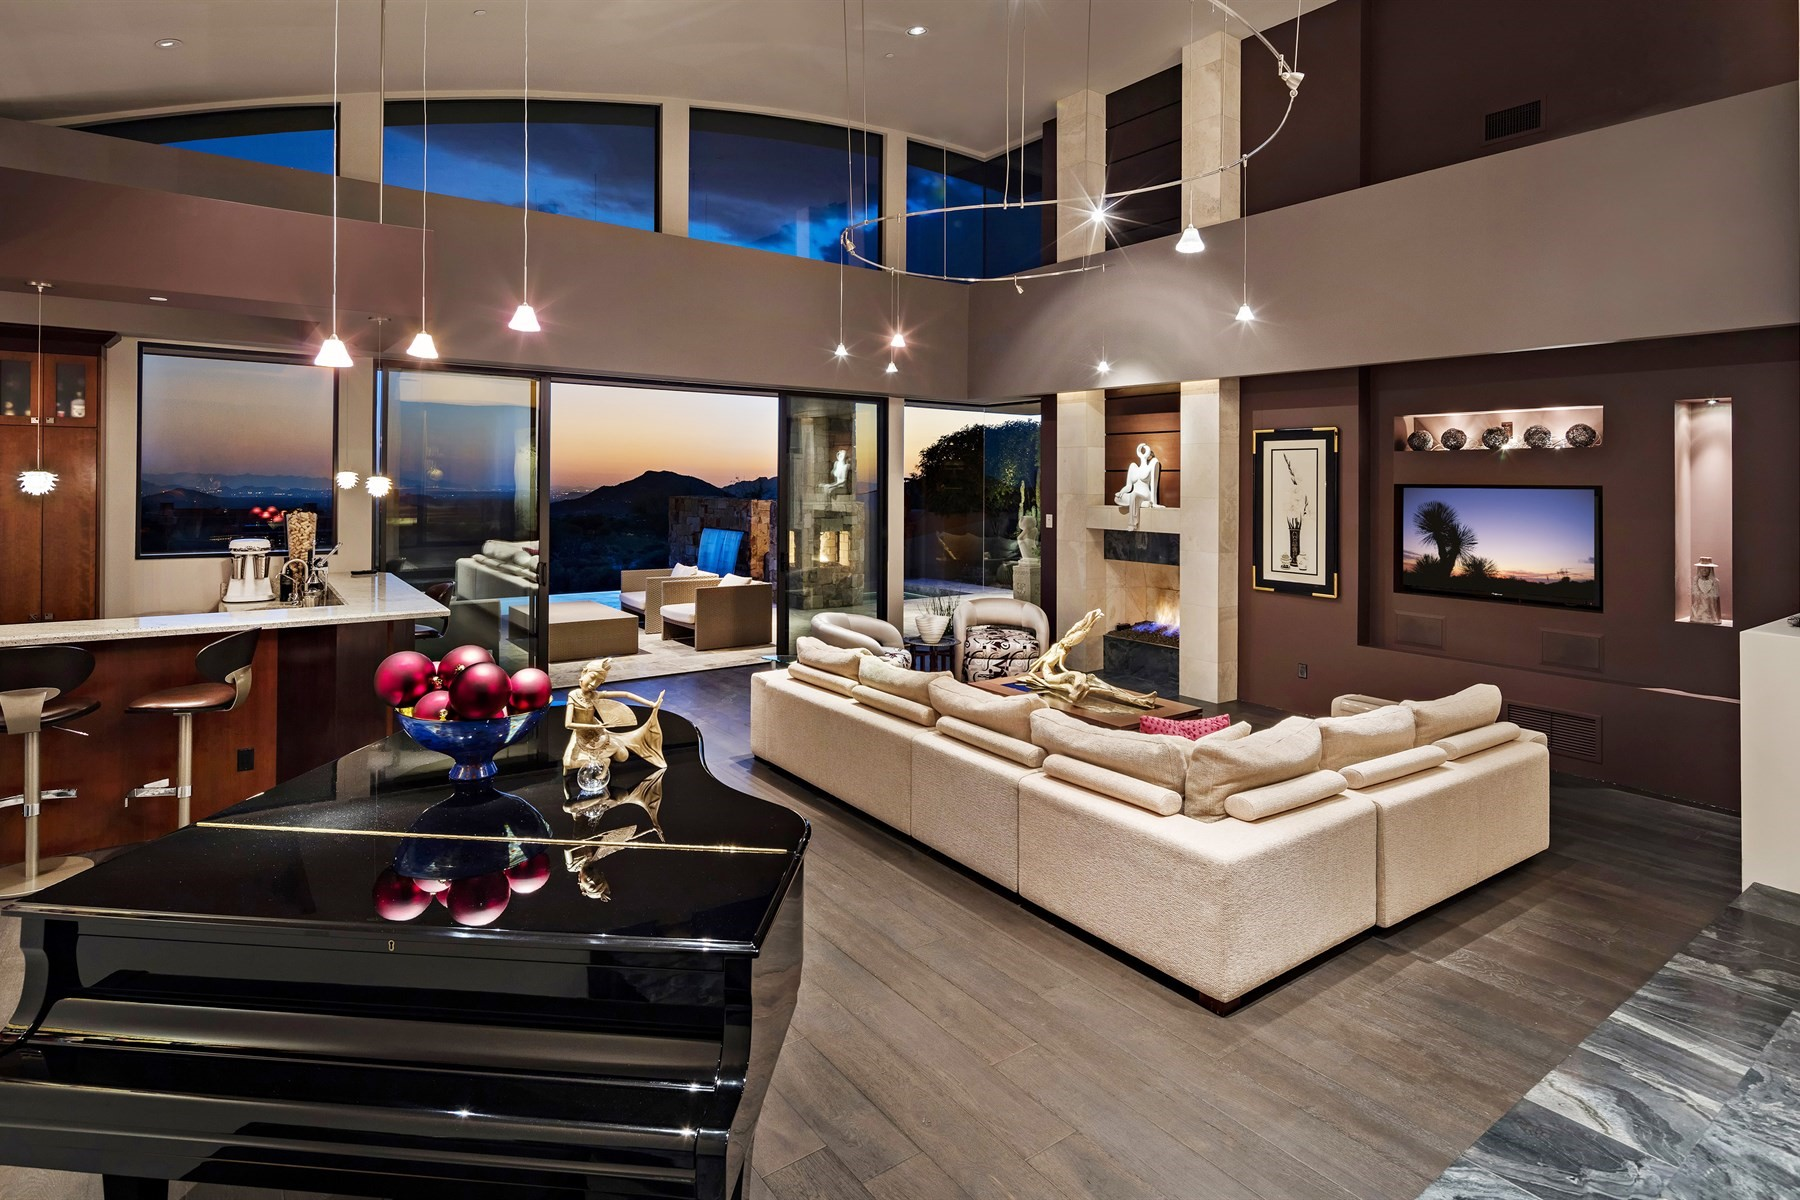 Single Family Home for Sale at Stunning contemporary home in Desert Mountain's Village of Lost Star 10806 E Falling Star Dr, Scottsdale, Arizona, 85262 United States